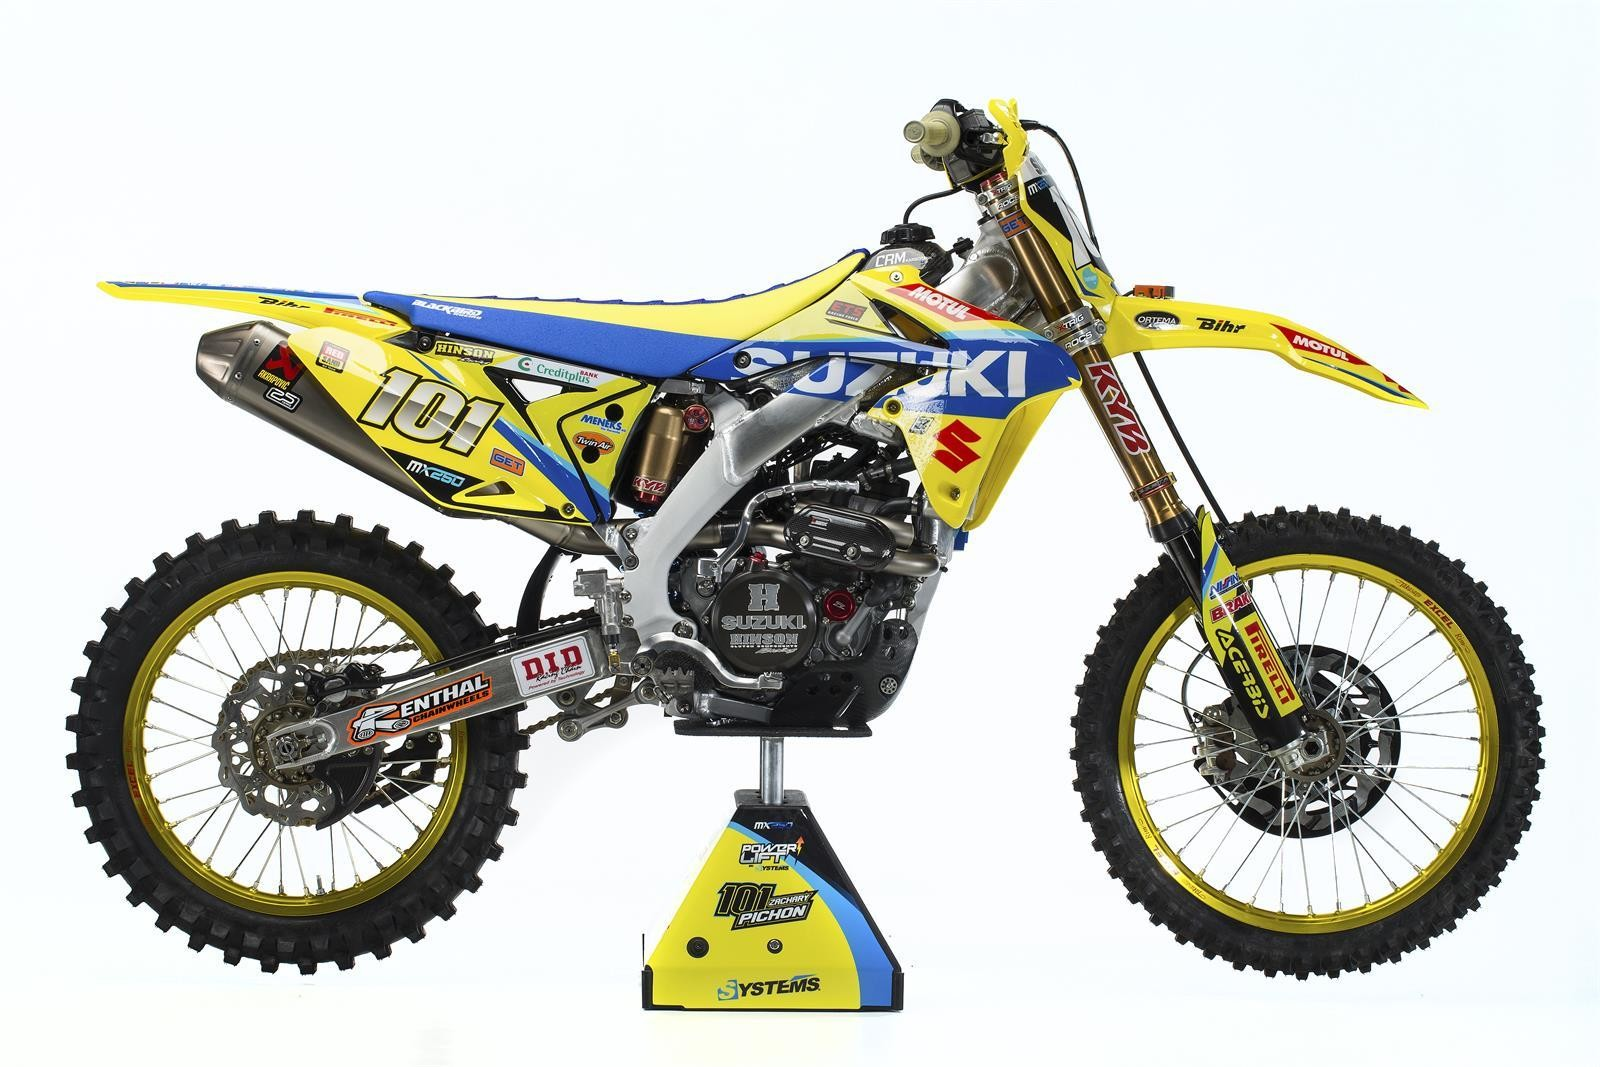 Zachary Pichon's 2017 Suzuki World MX2 RM-Z250 - First Look: 2017 Suzuki World MX2 Team - Motocross Pictures - Vital MX